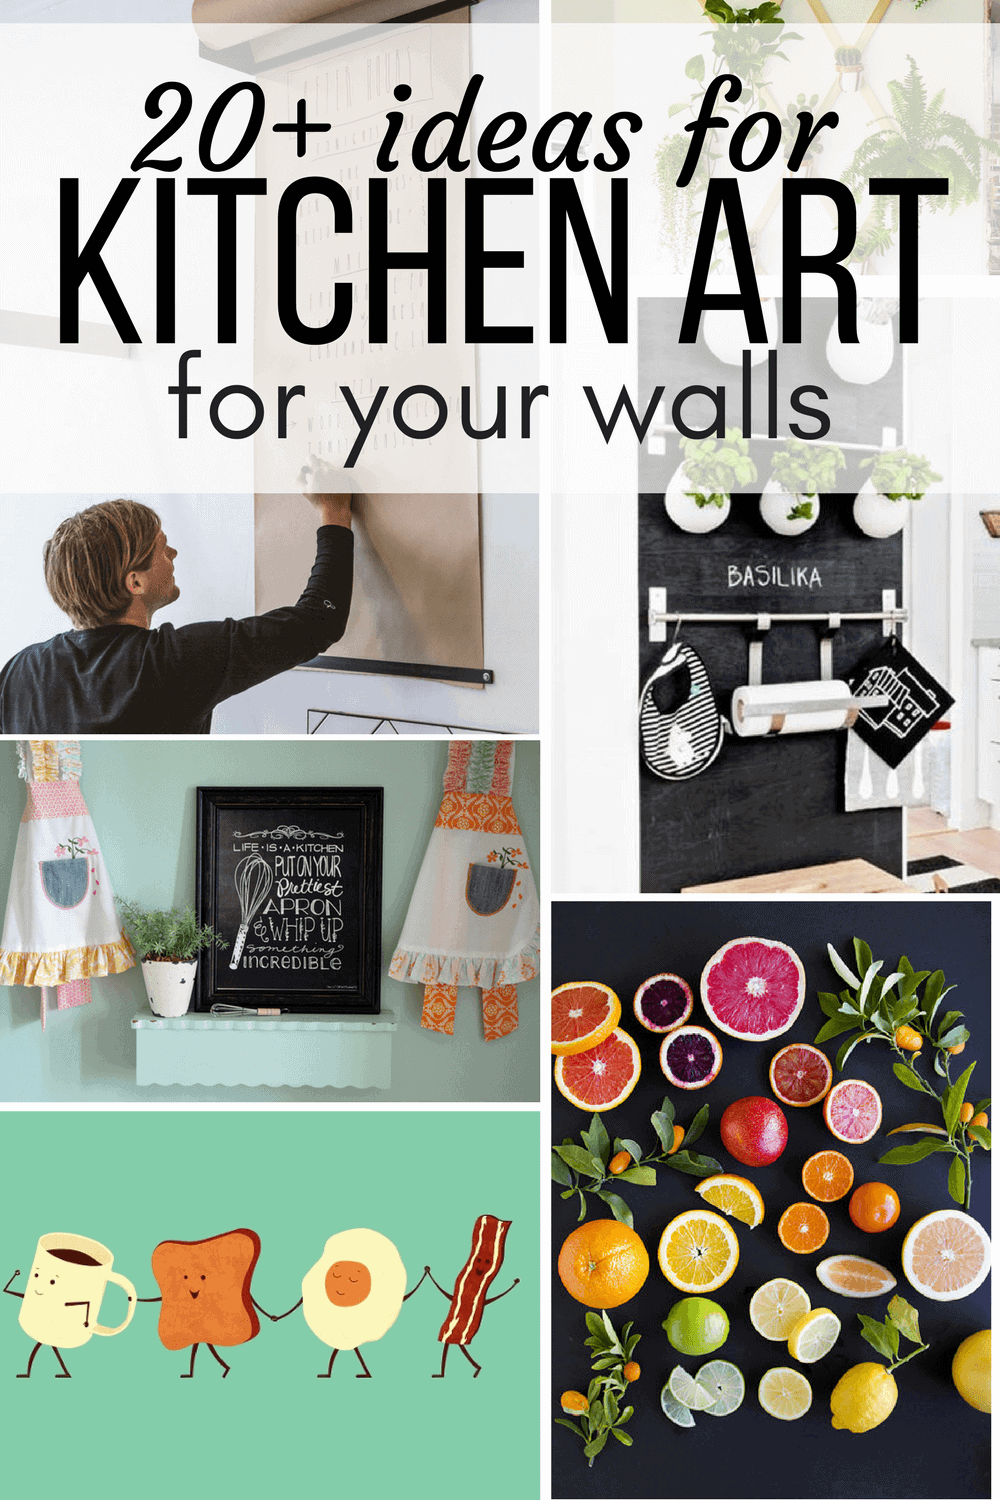 20+ gorgeous kitchen art ideas you'll love - love & renovations